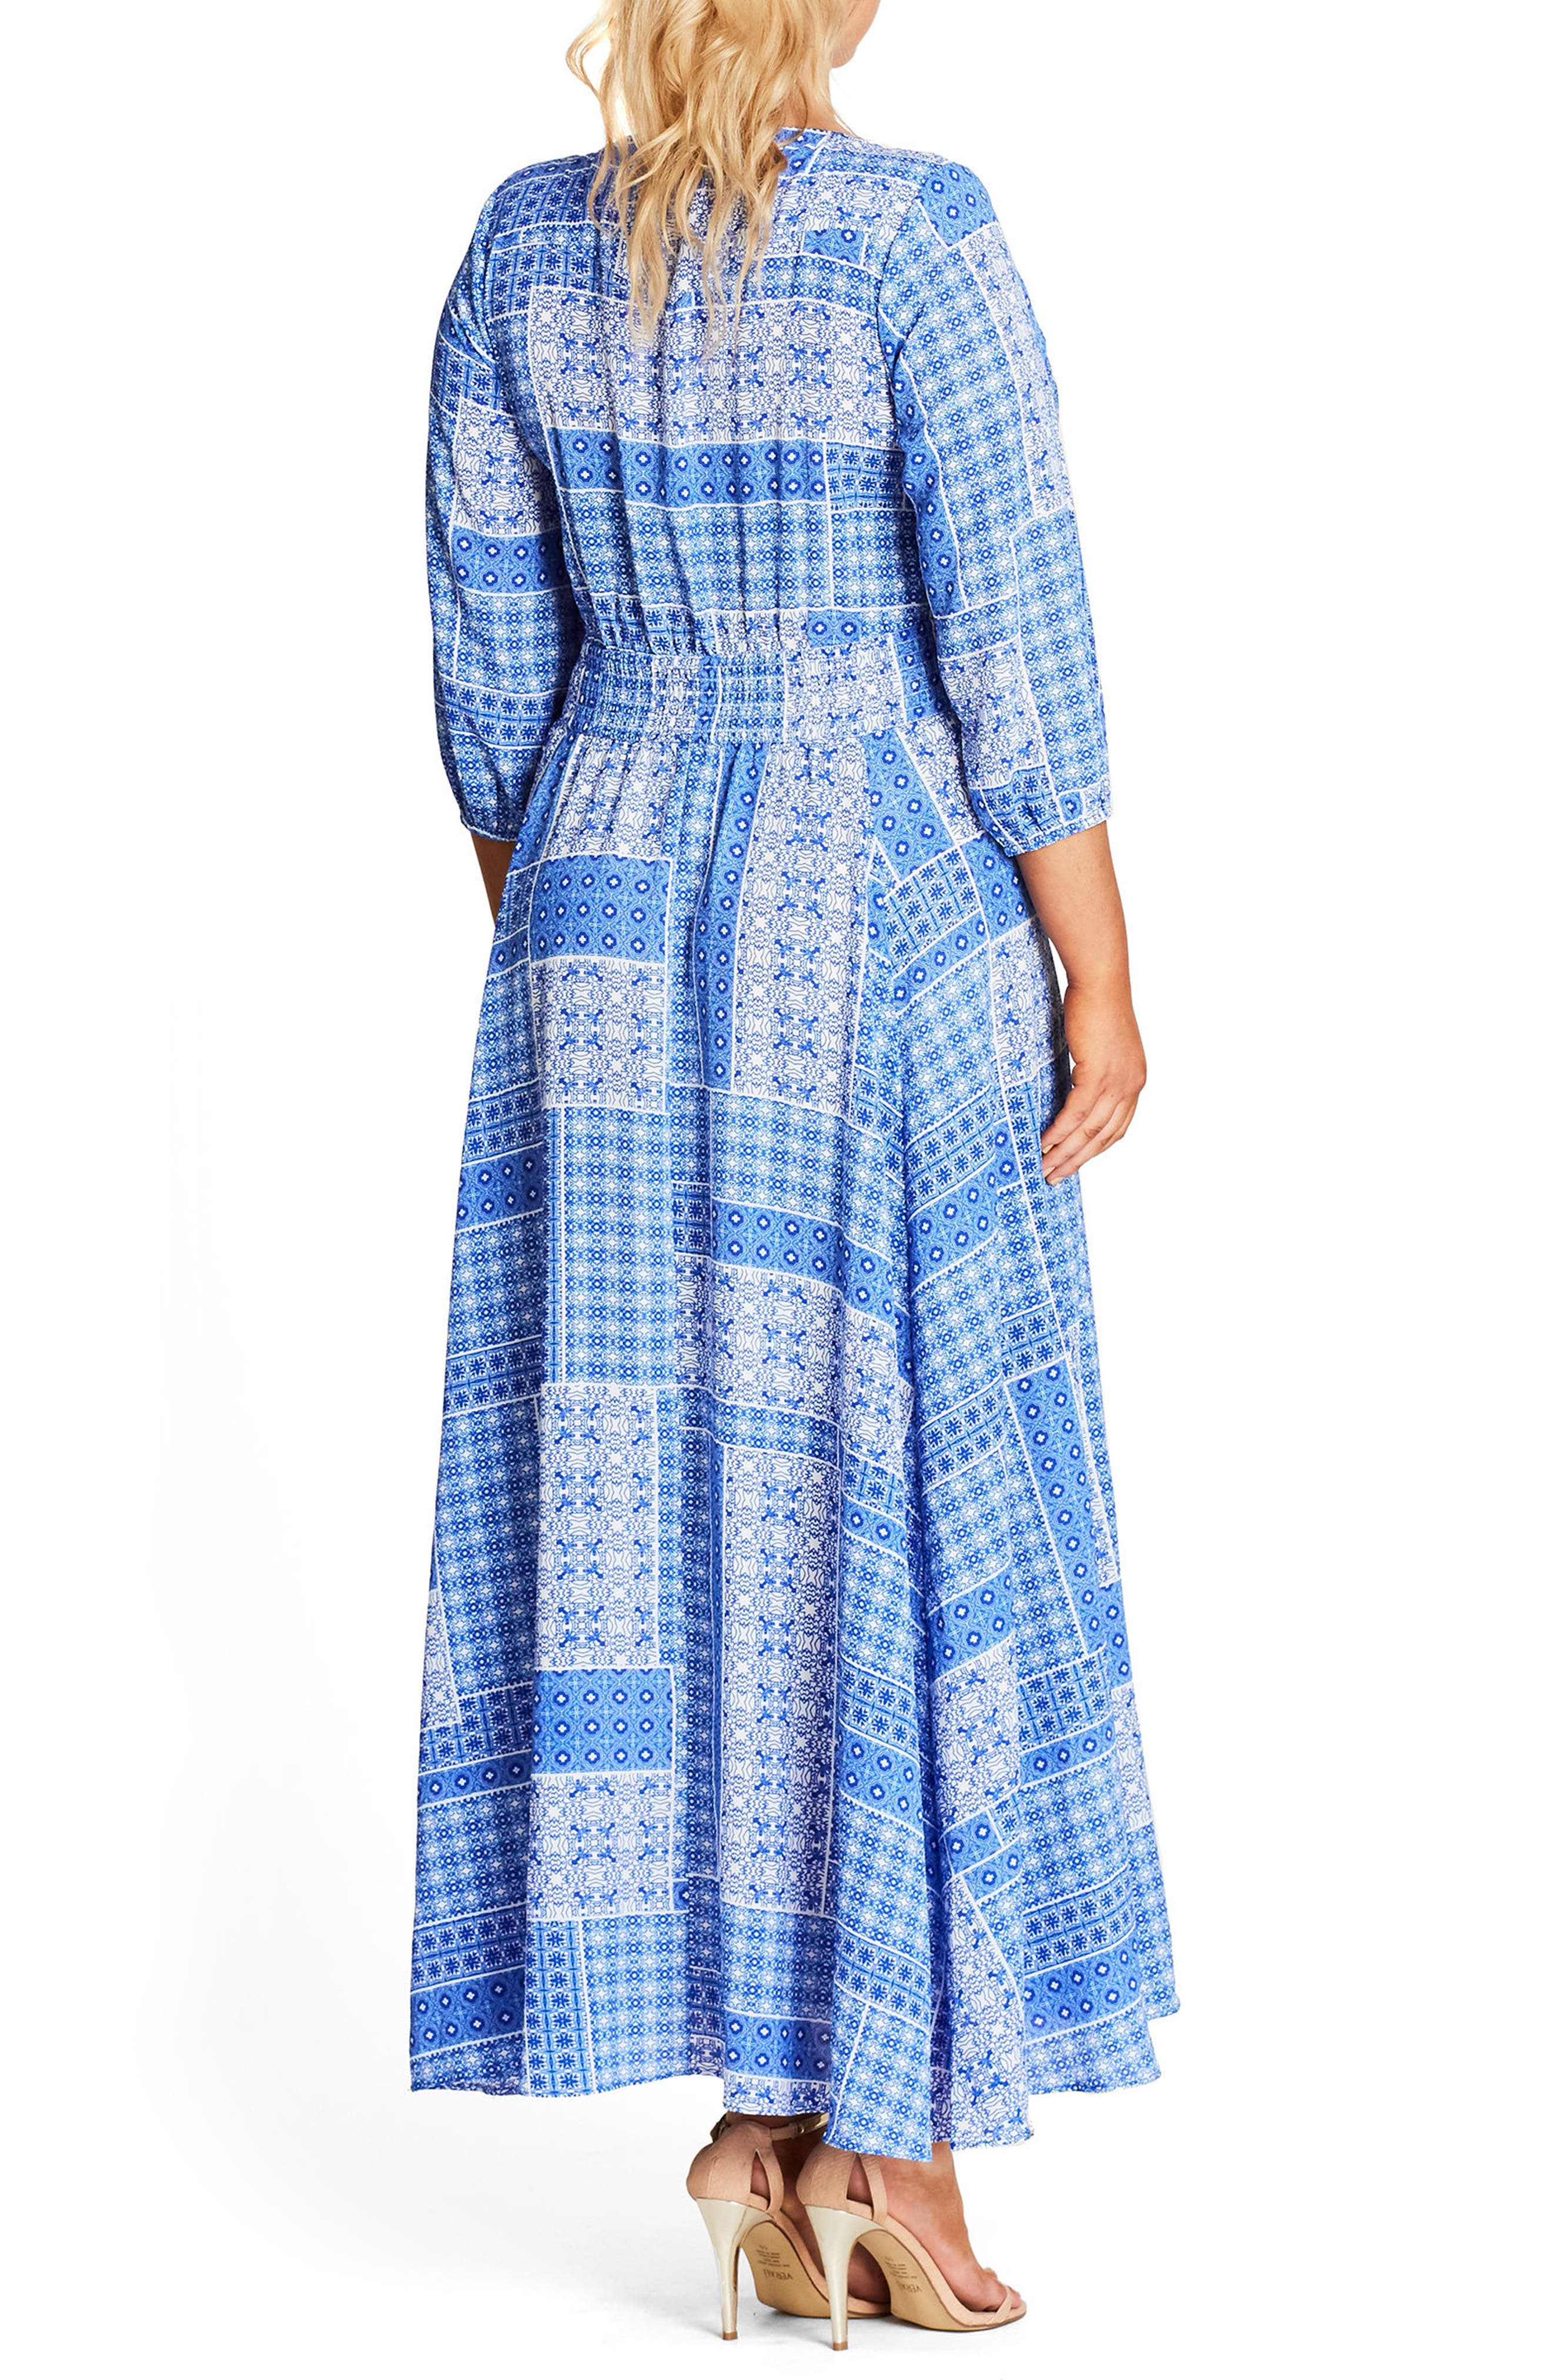 China Plate A-Line Maxi Dress,                             Alternate thumbnail 2, color,                             CHINA PLATE